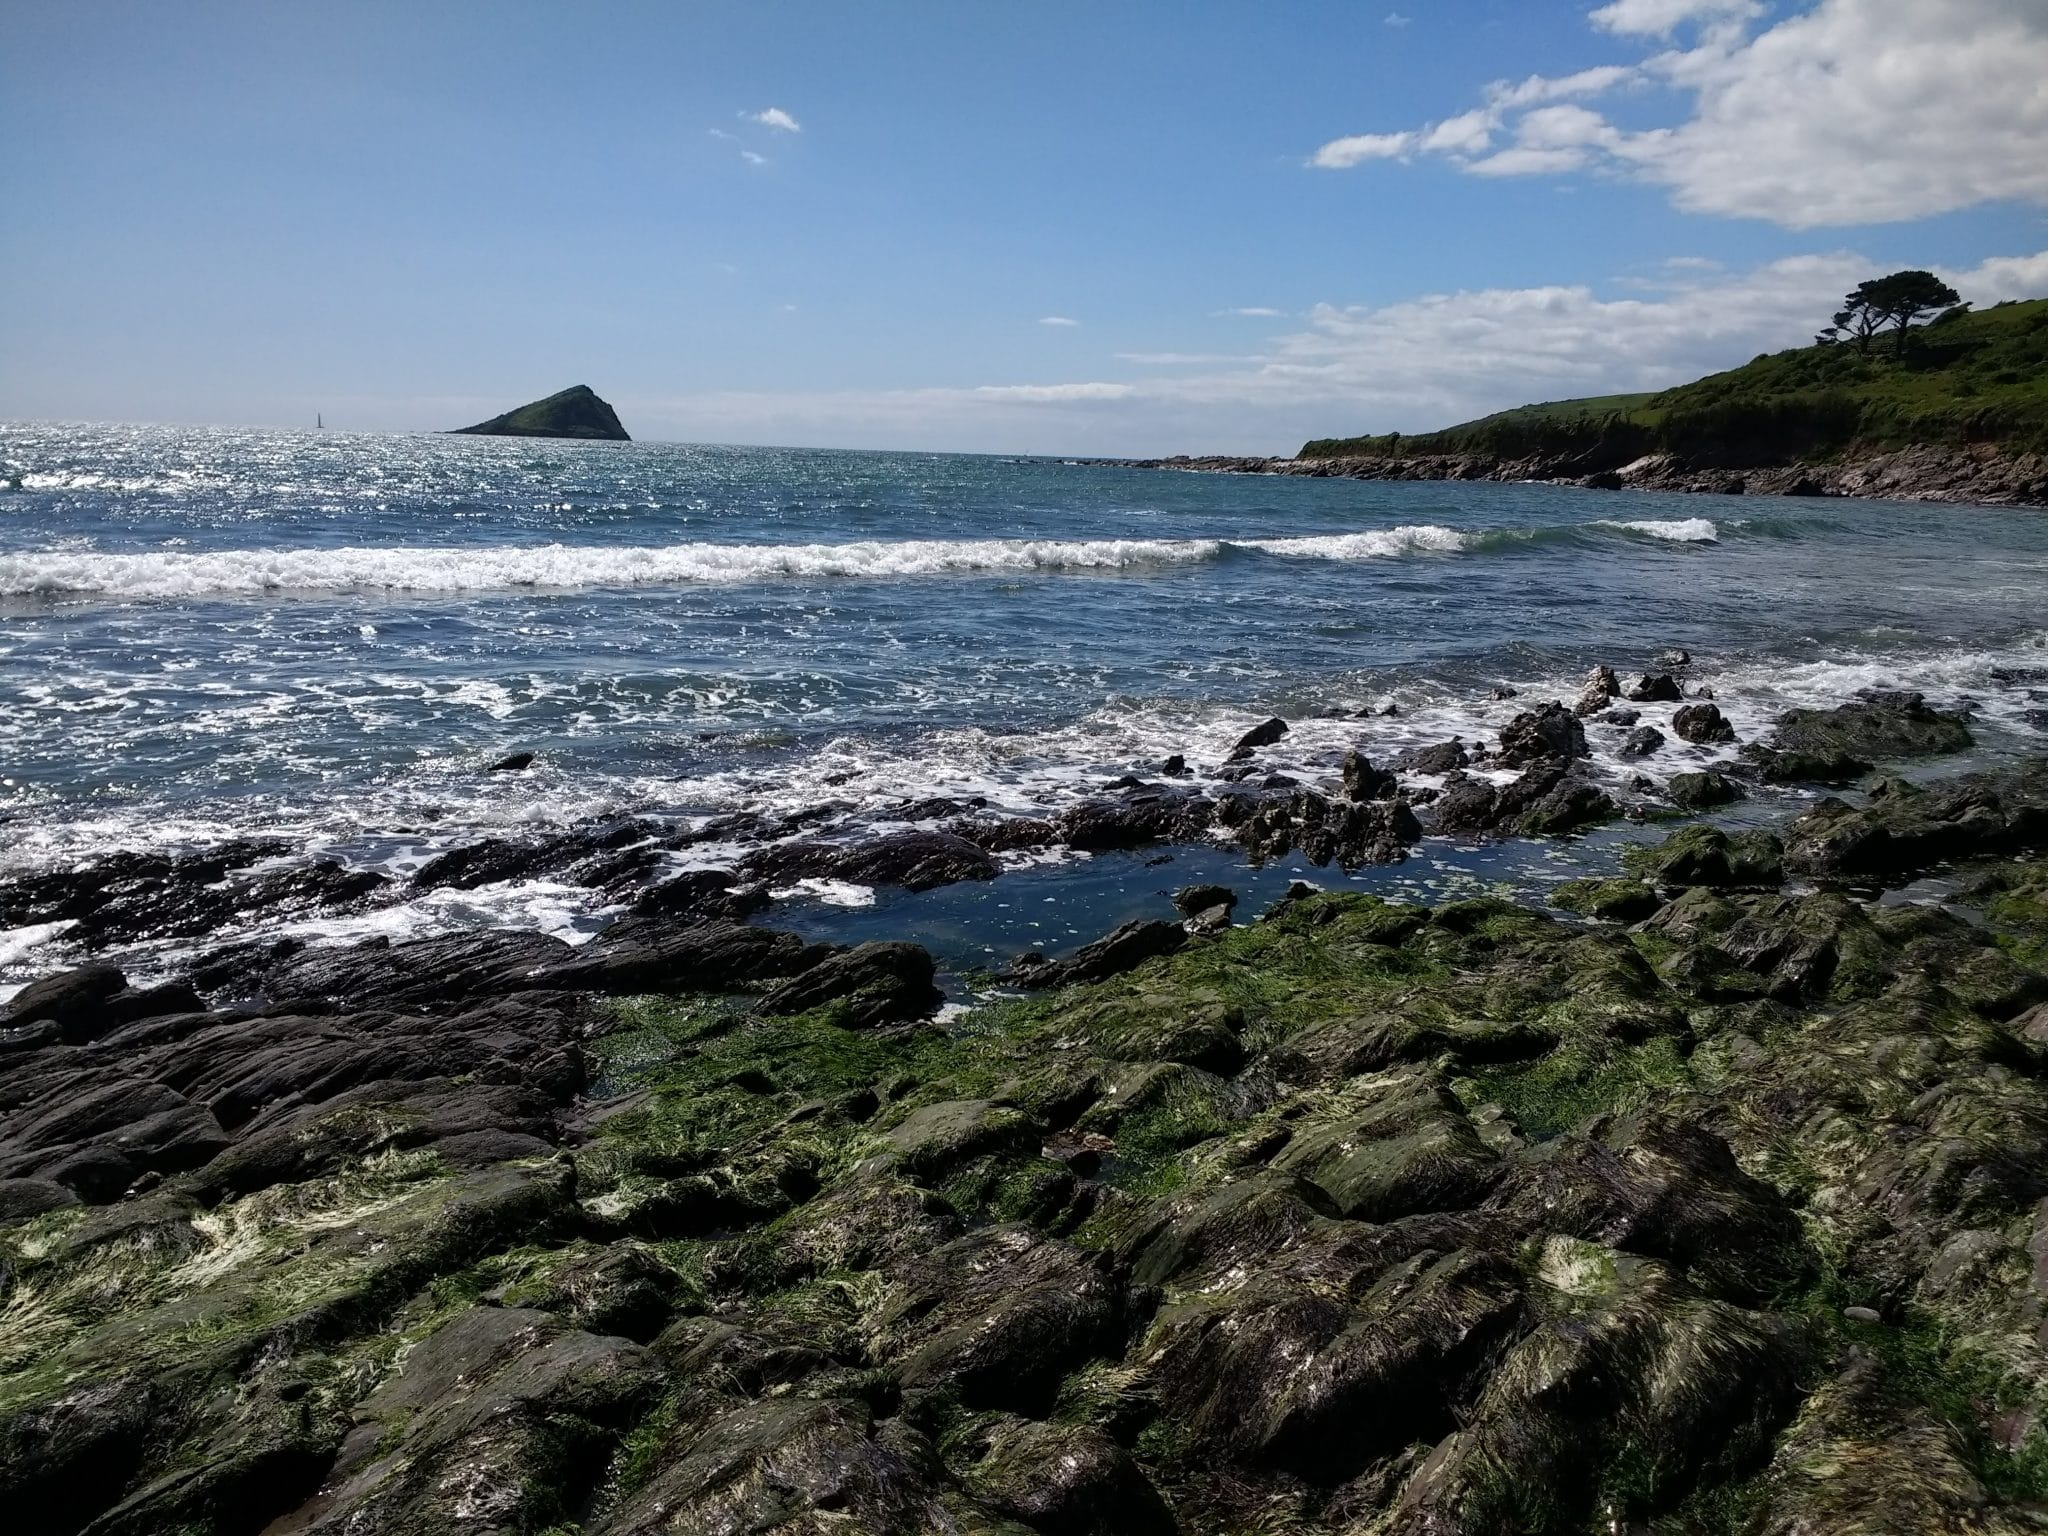 Photo of the Mewstone from Wembury beach in May